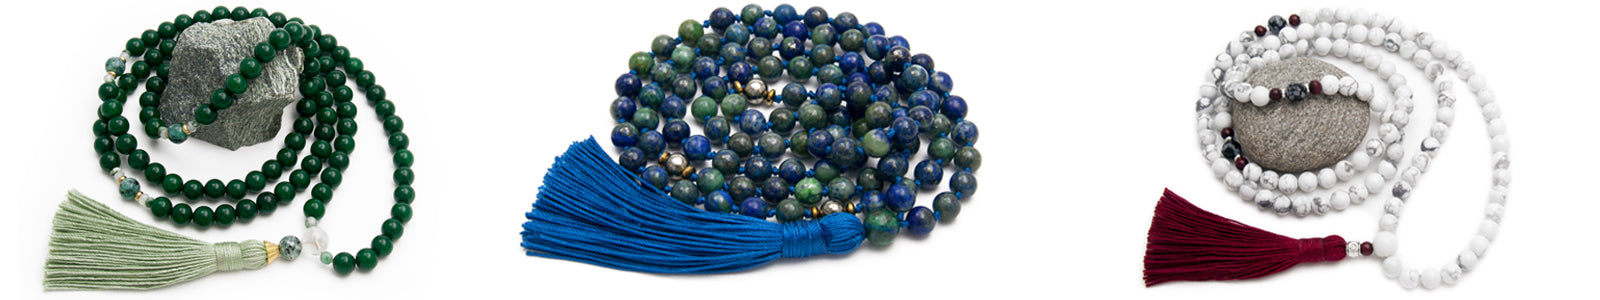 Choosing Your Mala Beads In-Depth Guide with Color